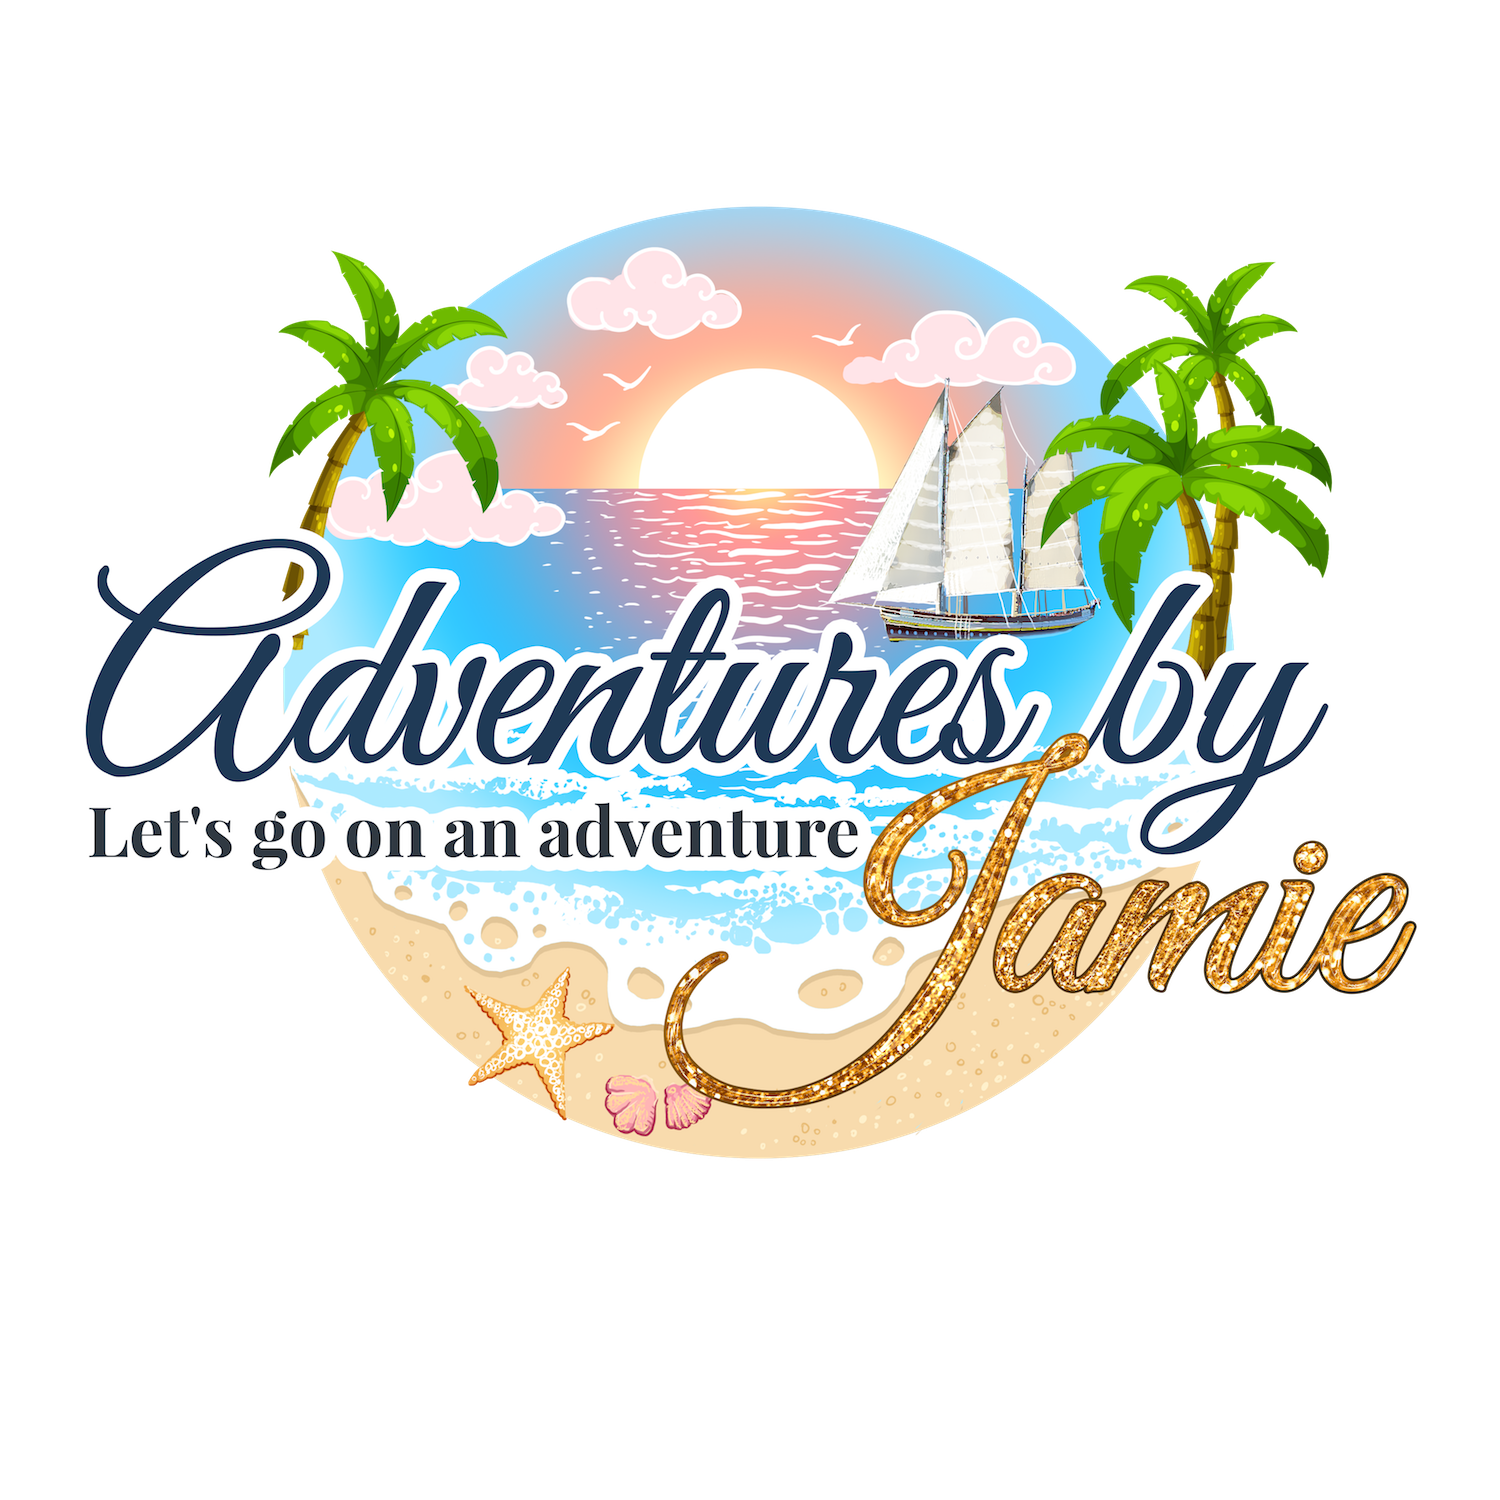 Adventures by Jamie | Let's go on an adventure